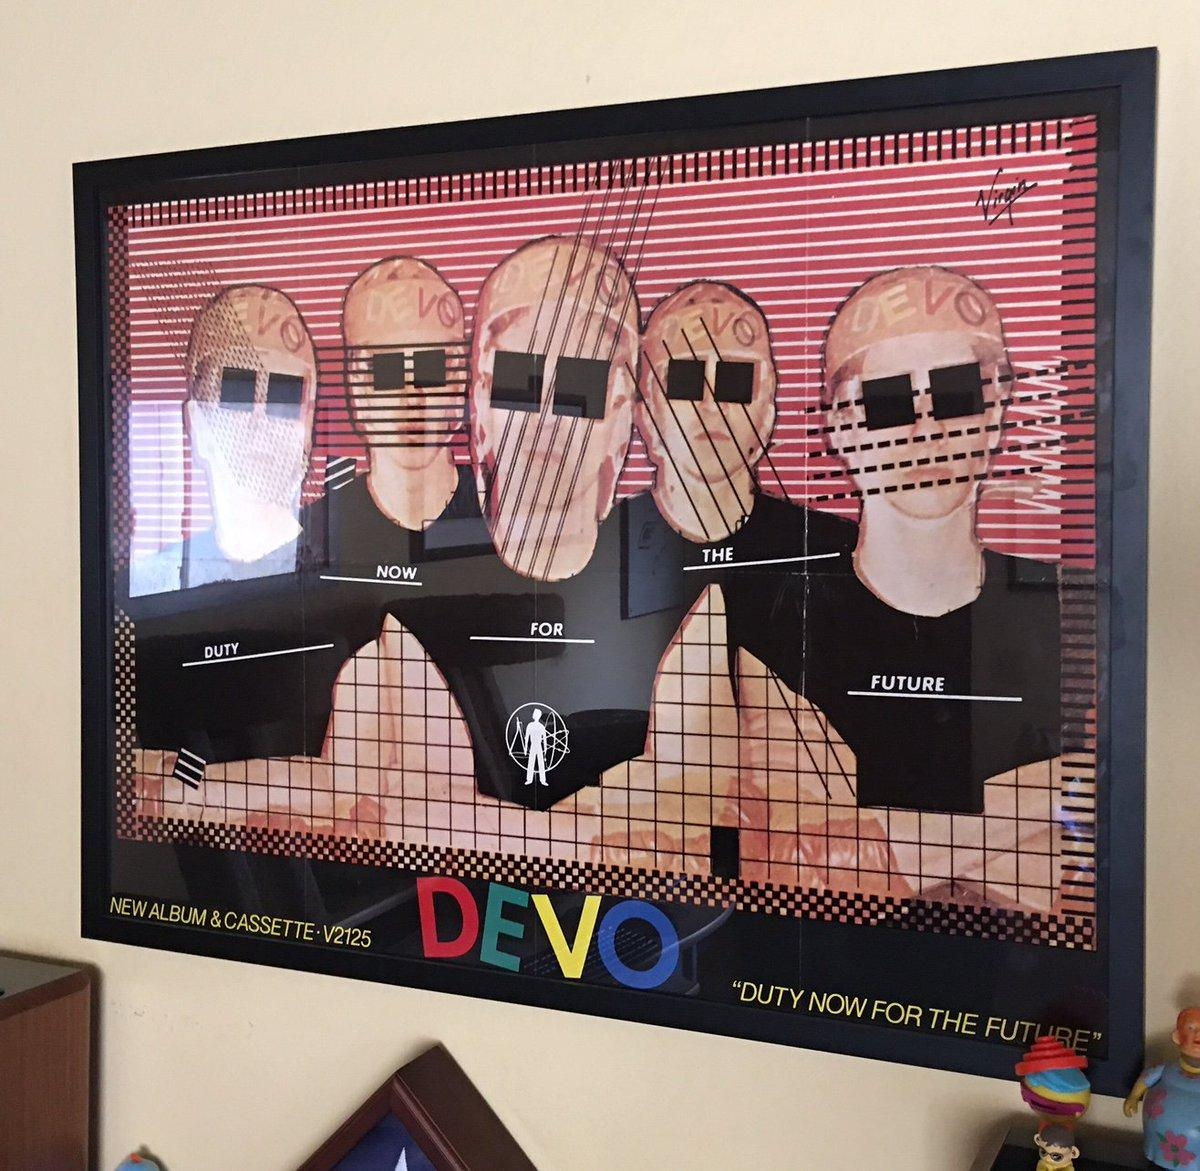 Album Cover Prints / Group Prints You Have On Your Wall | Steve Regarding Album Cover Wall Art (Image 2 of 20)